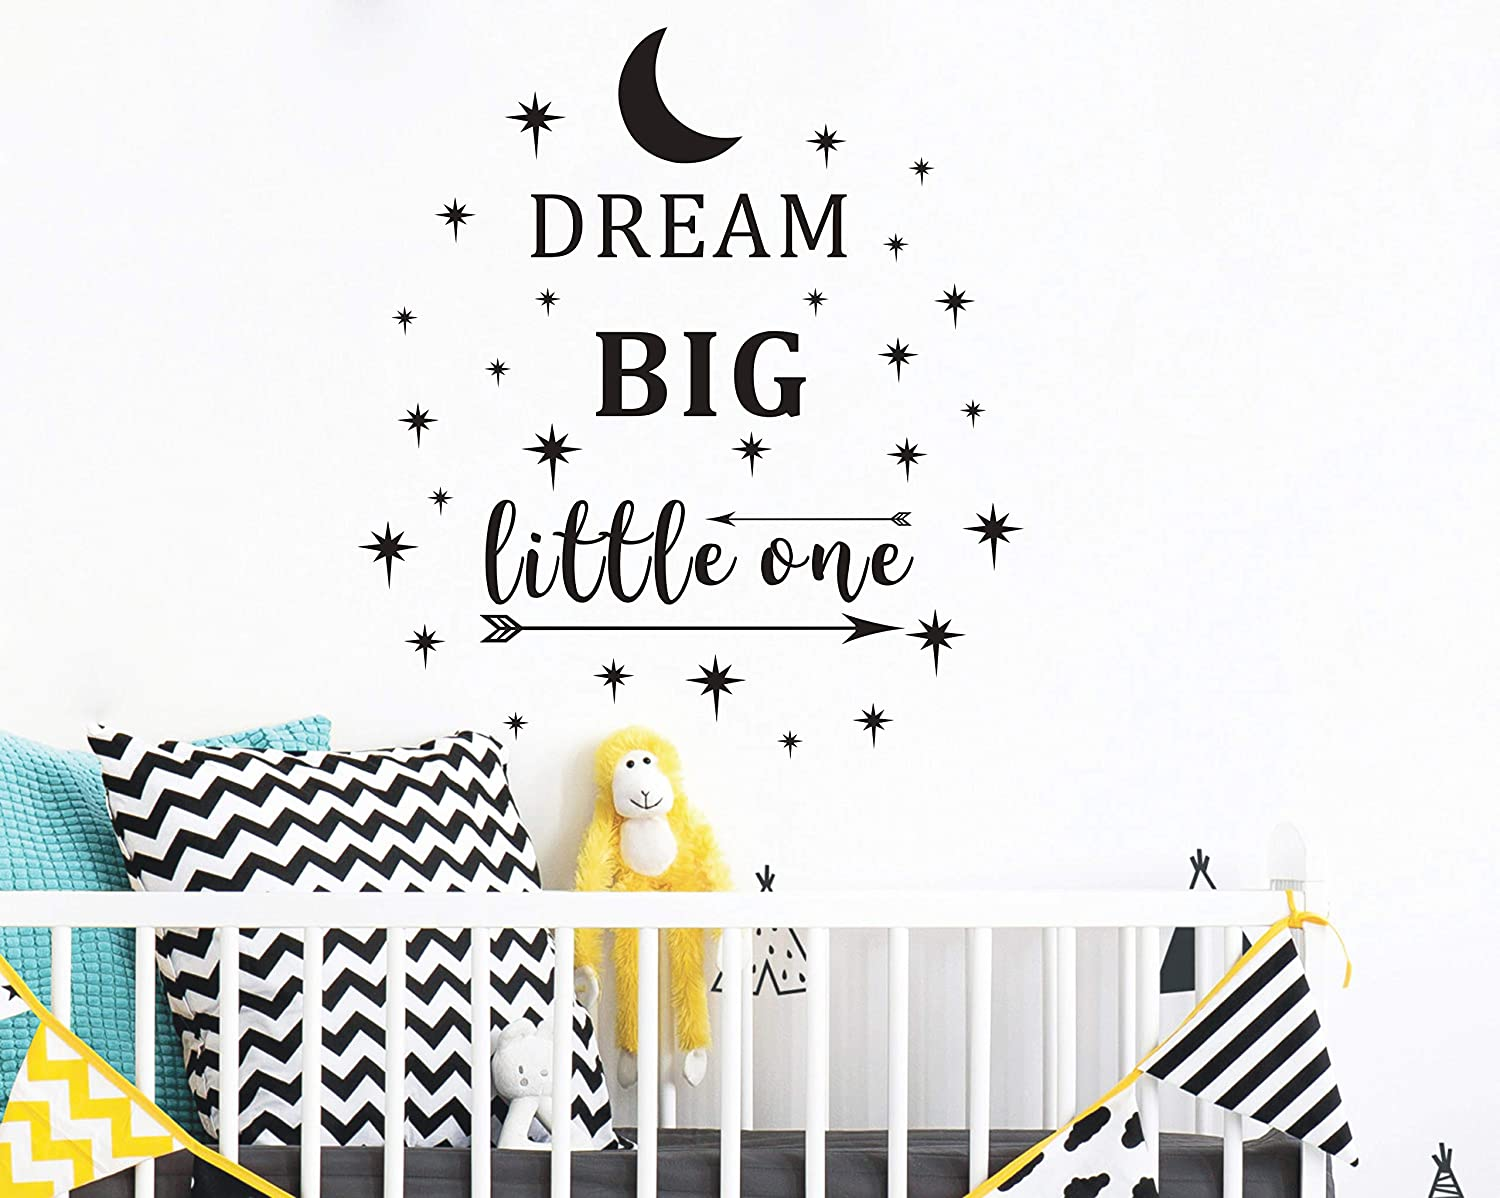 Dream Big Little One Wall Decal, Wall Sticker Quote, Nursery Wall Decal, Removable Vinyl Stickers for Children Baby Kids Boy Girl Bedroom (A24) (Black) Yystore